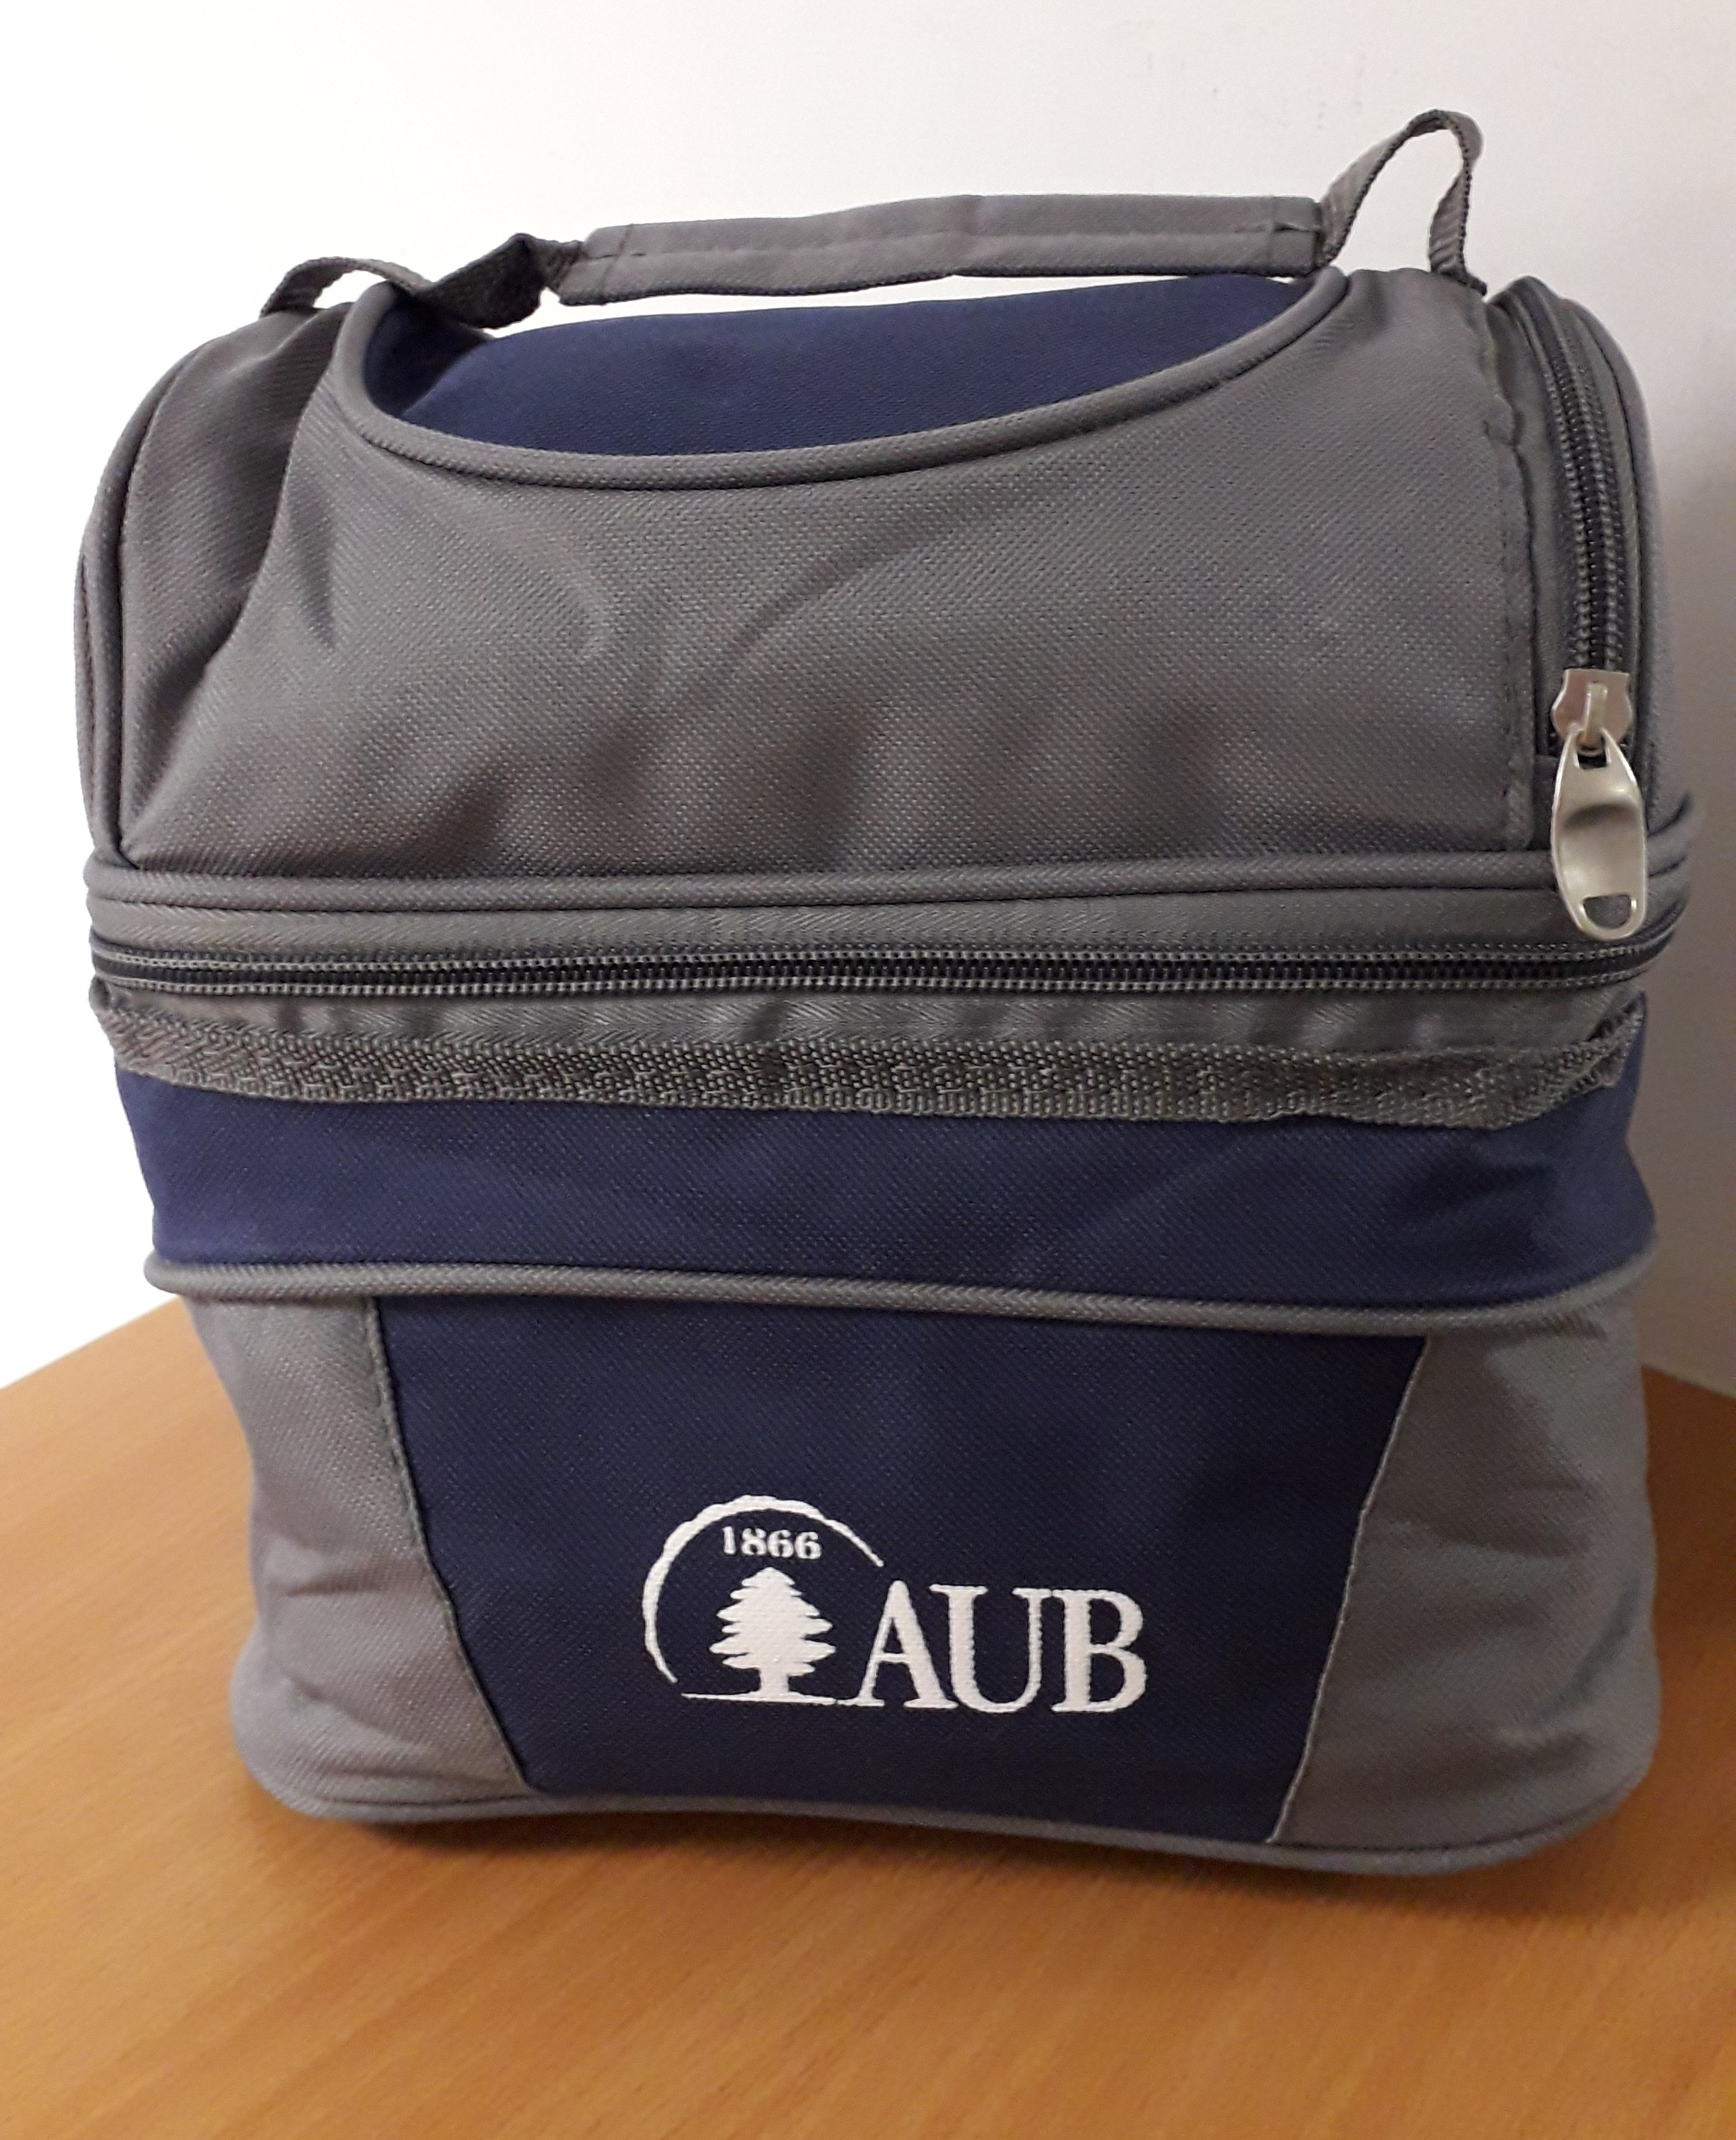 AUB COOLER BAG 2 COMPARTMENTS (L.B/GY, LI/GY, RD/GY, BL/GY)